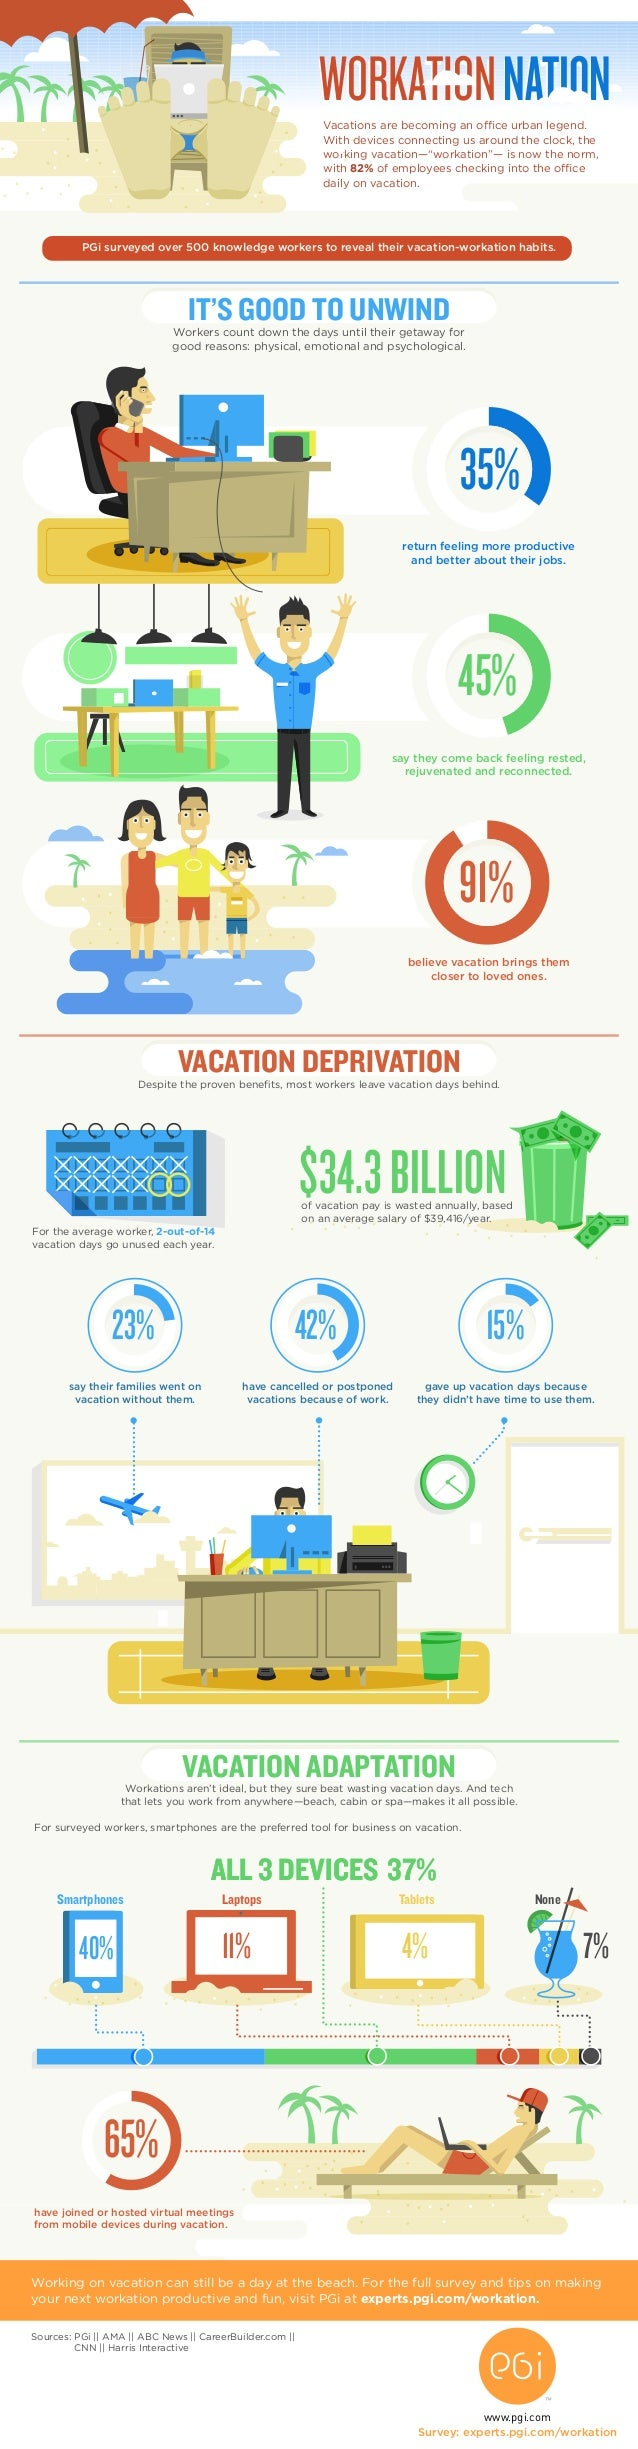 WORKATIONNATION IT'S GOOD TO UNWIND Vacations are becoming an office urban legend. With devices connecting us around the c...